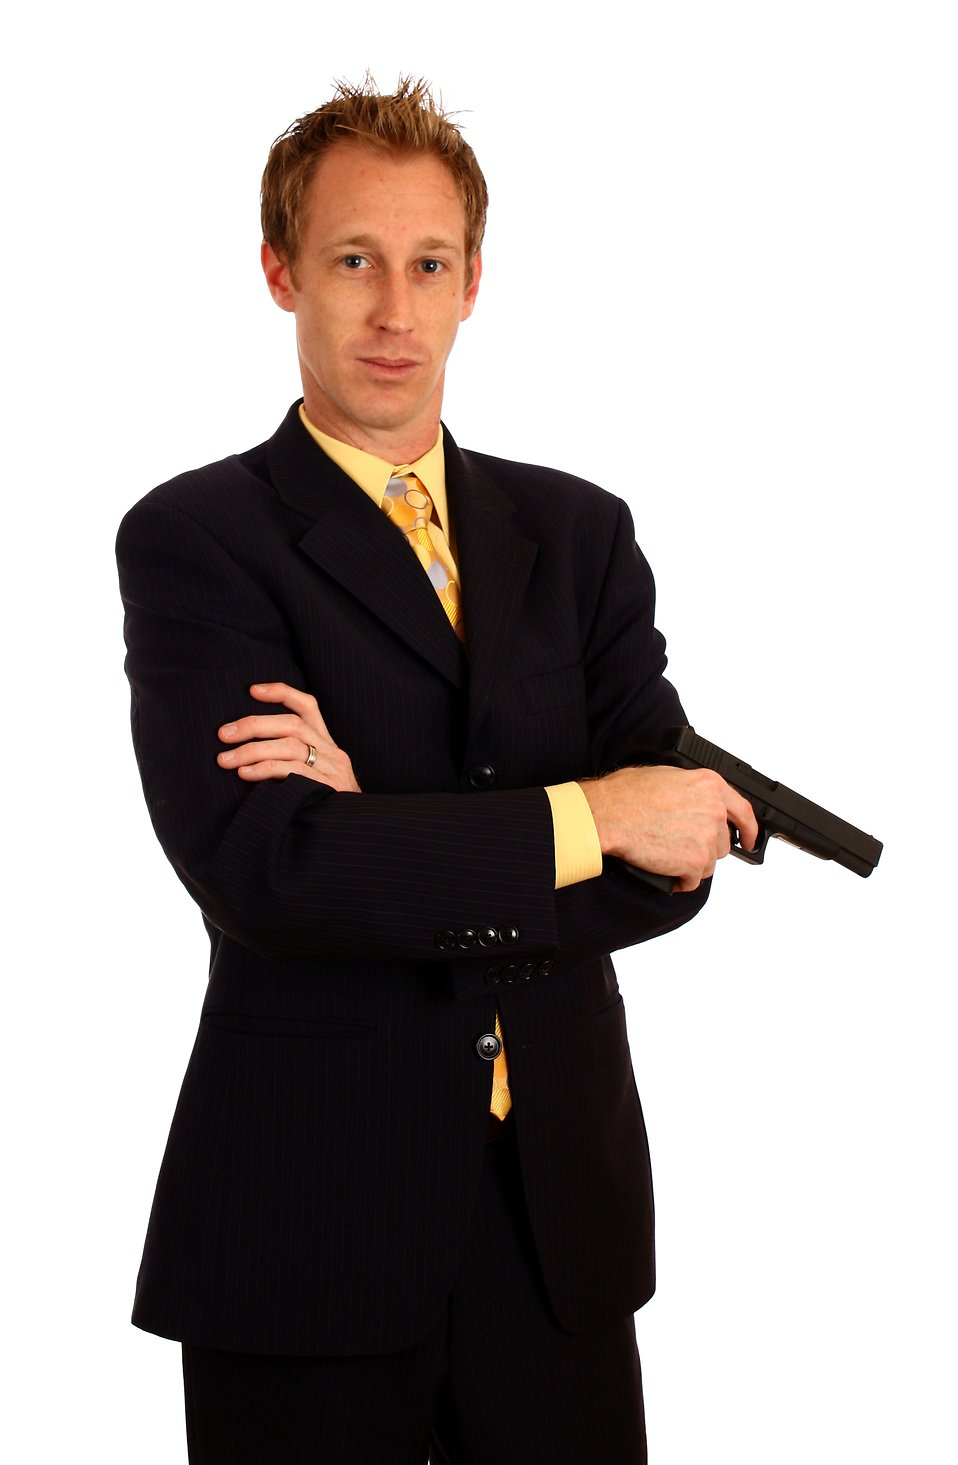 A young businessman in a suit holding a pistol : Free Stock Photo